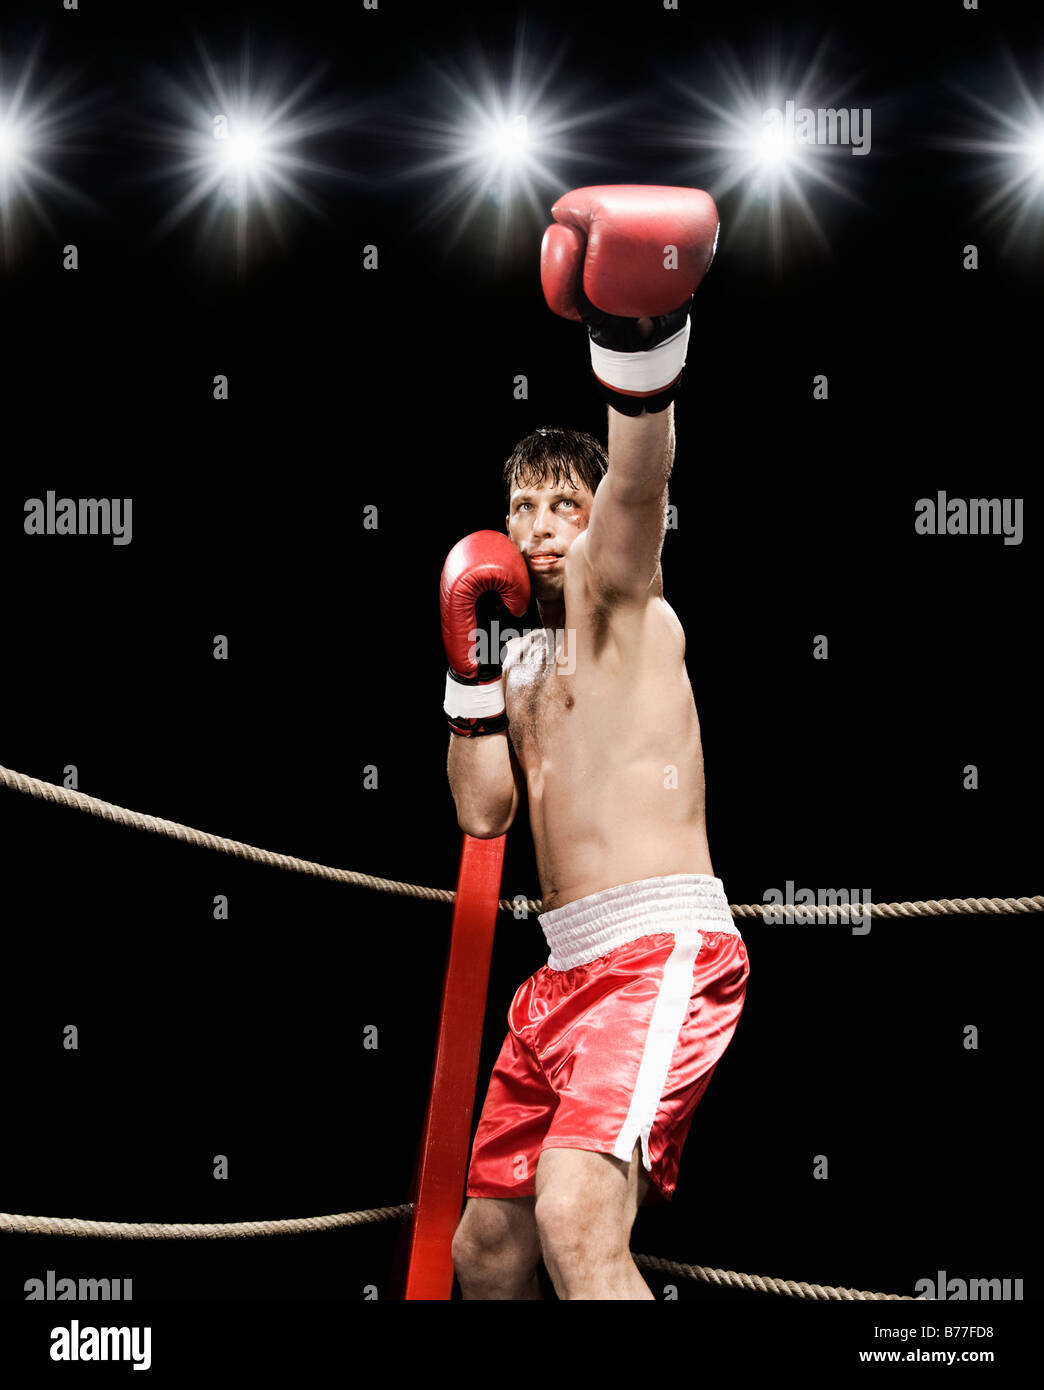 d467e28c1513 Boxing Trunks Stock Photos   Boxing Trunks Stock Images - Alamy